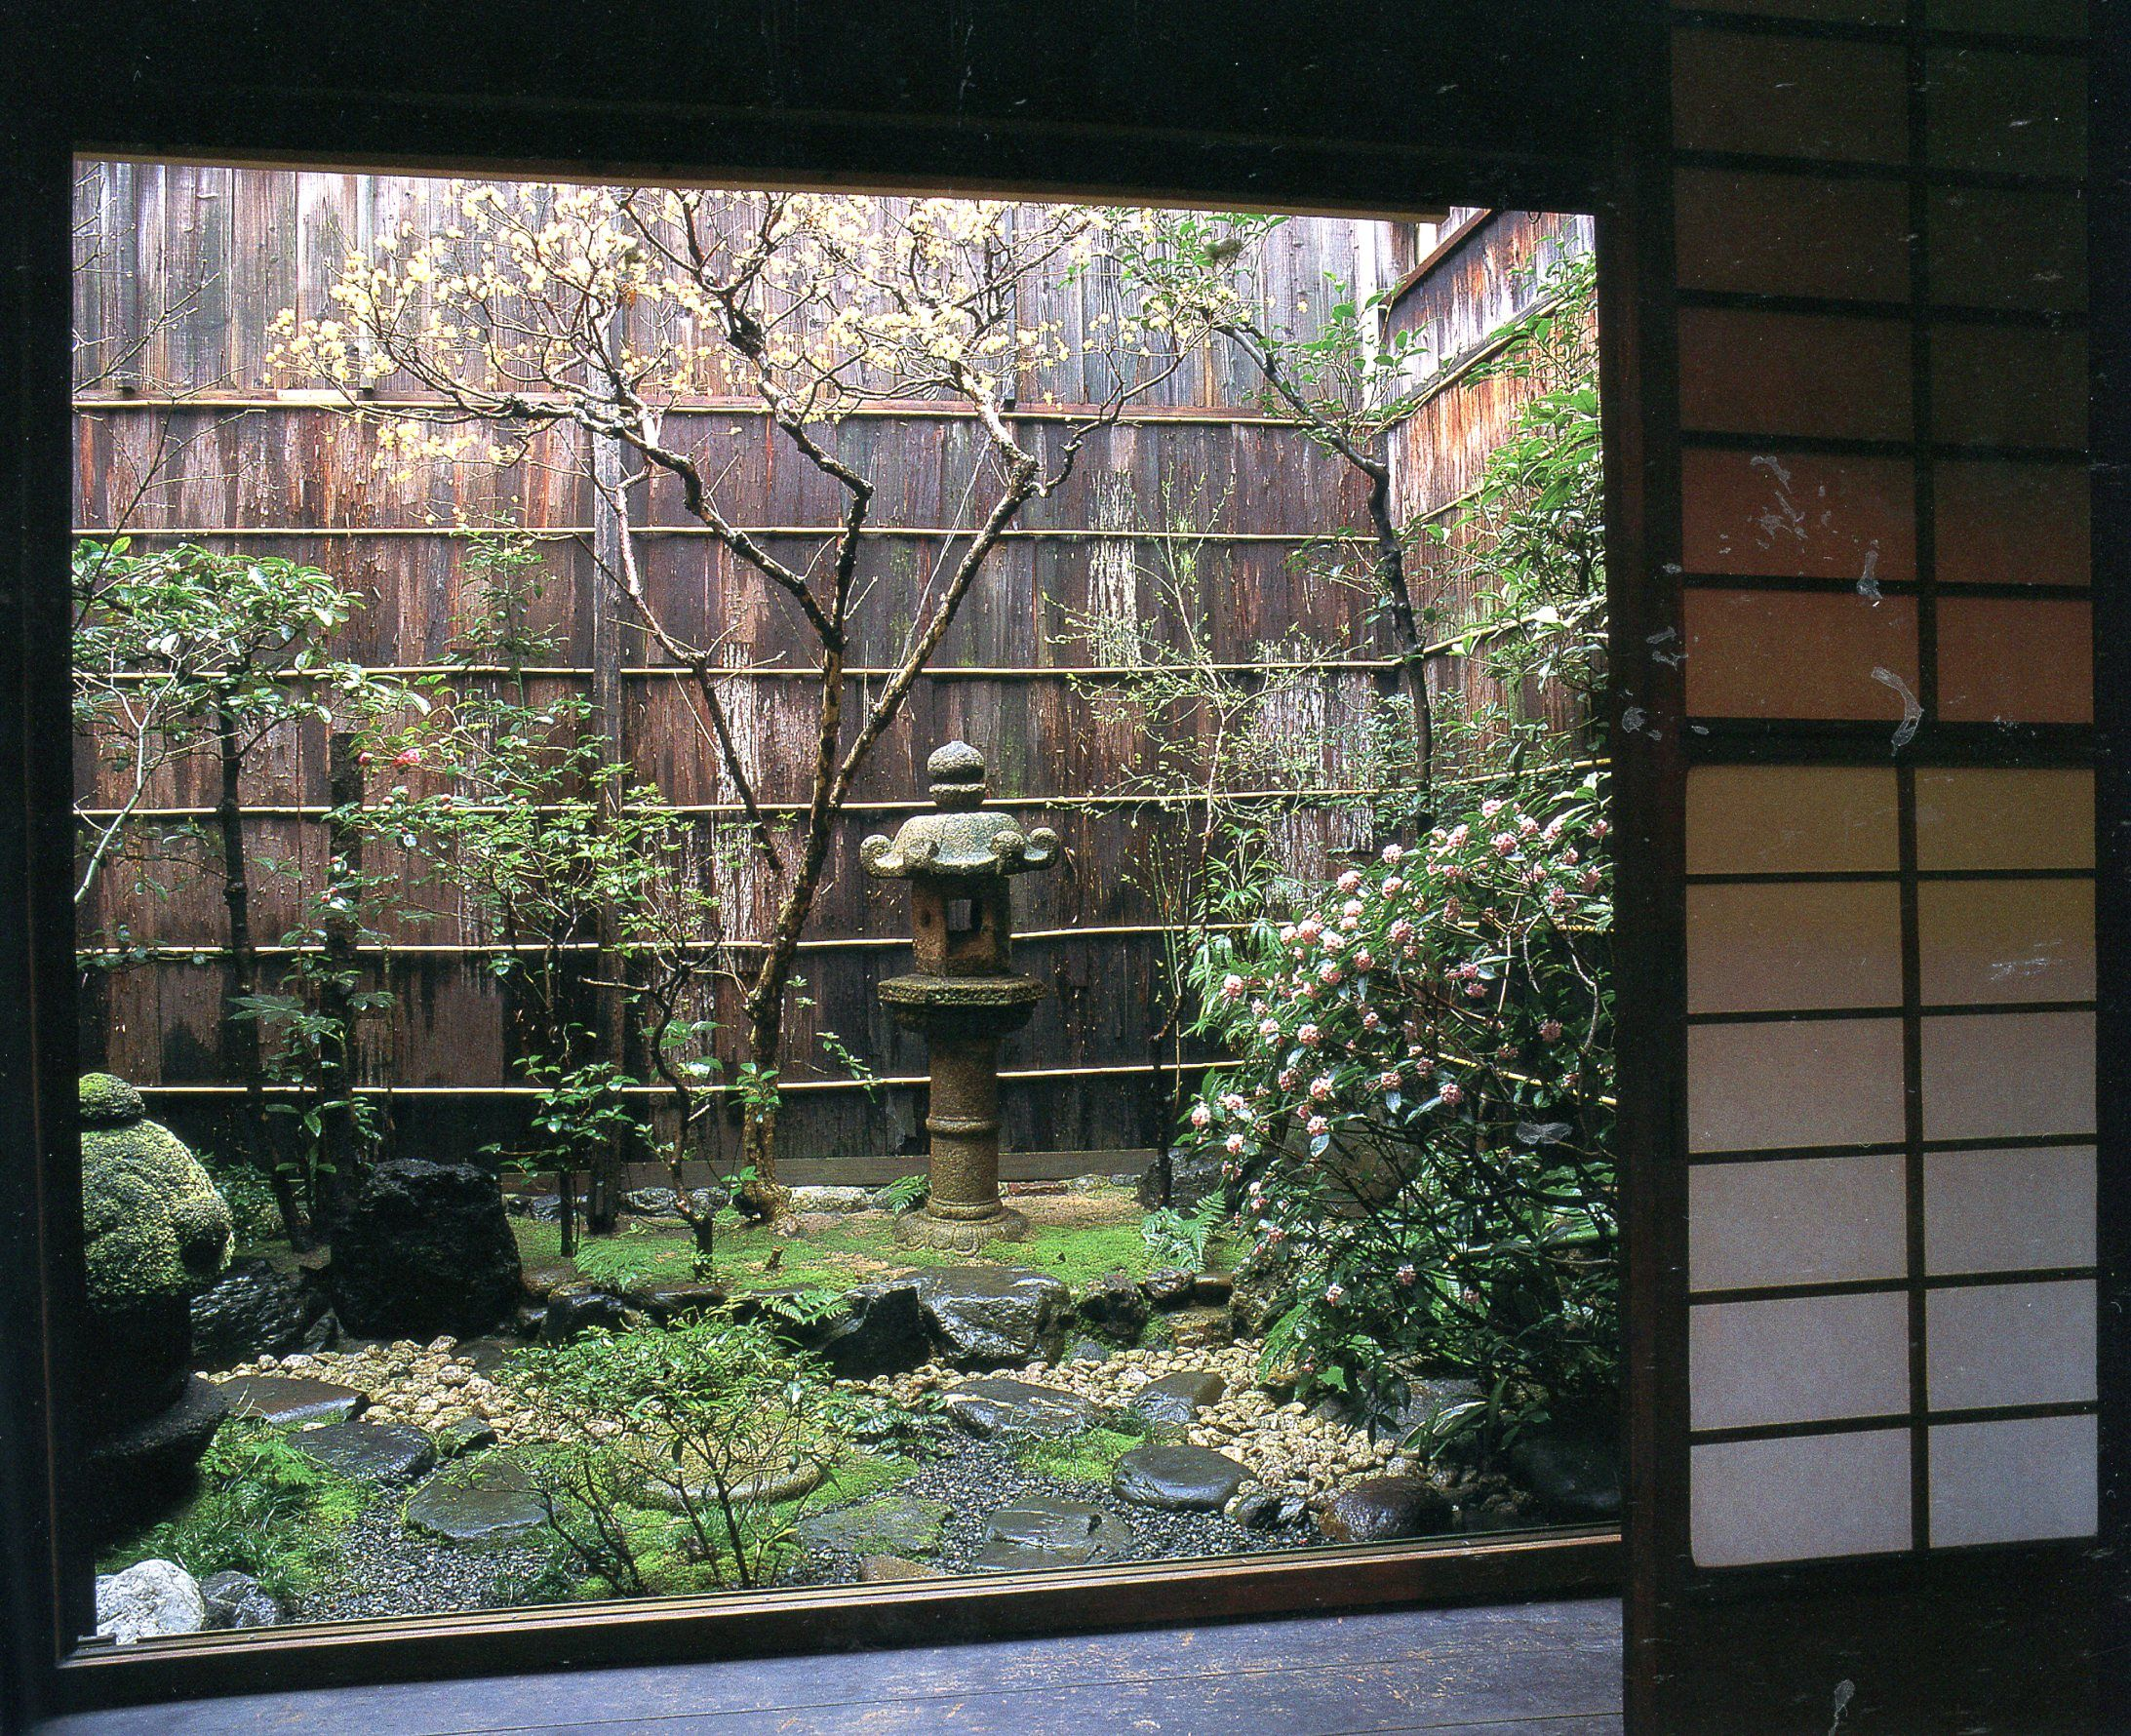 f6cc27d7e9a67bac4036b2e545c1c02d - Landscapes For Small Spaces Japanese Courtyard Gardens